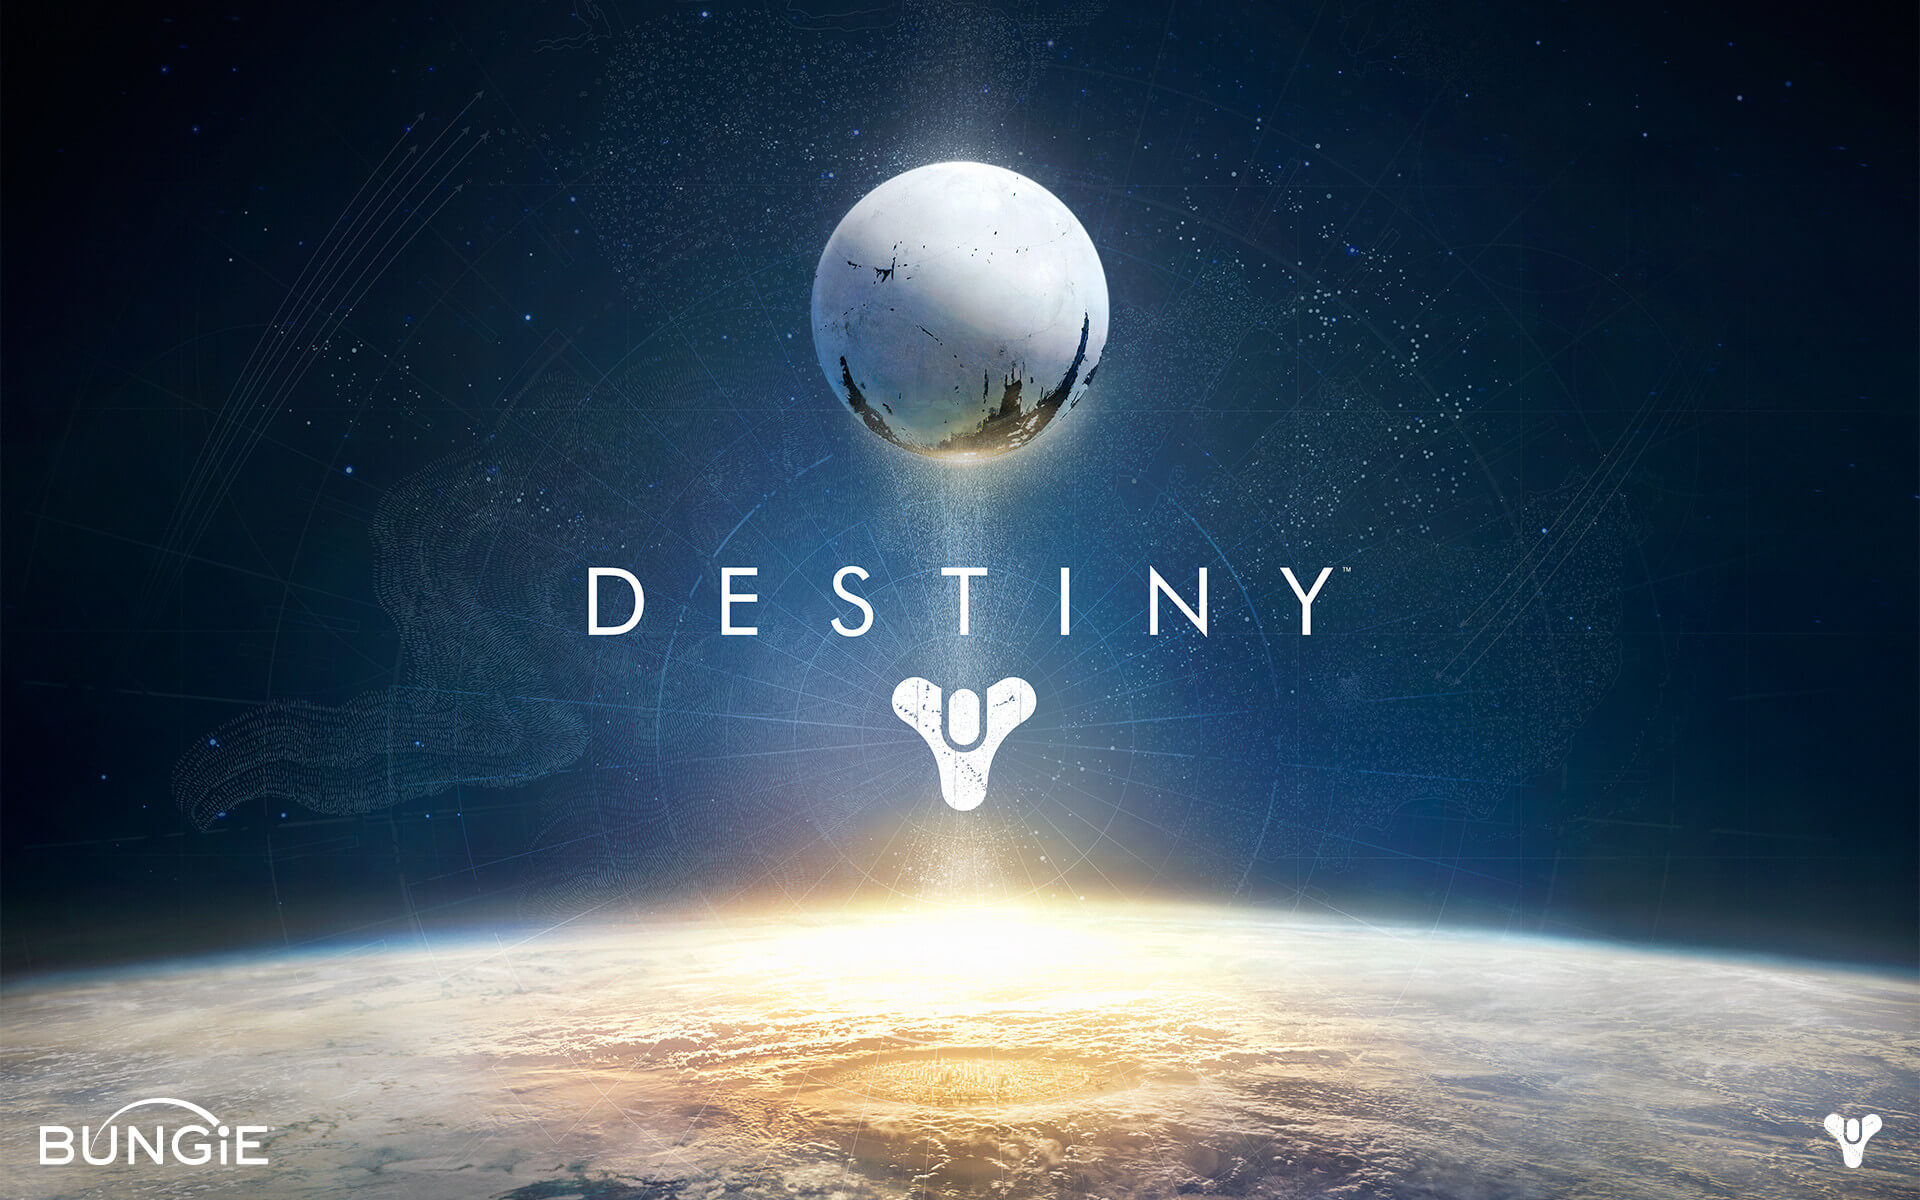 'Destiny' Players Earn Their Own Unique Loot